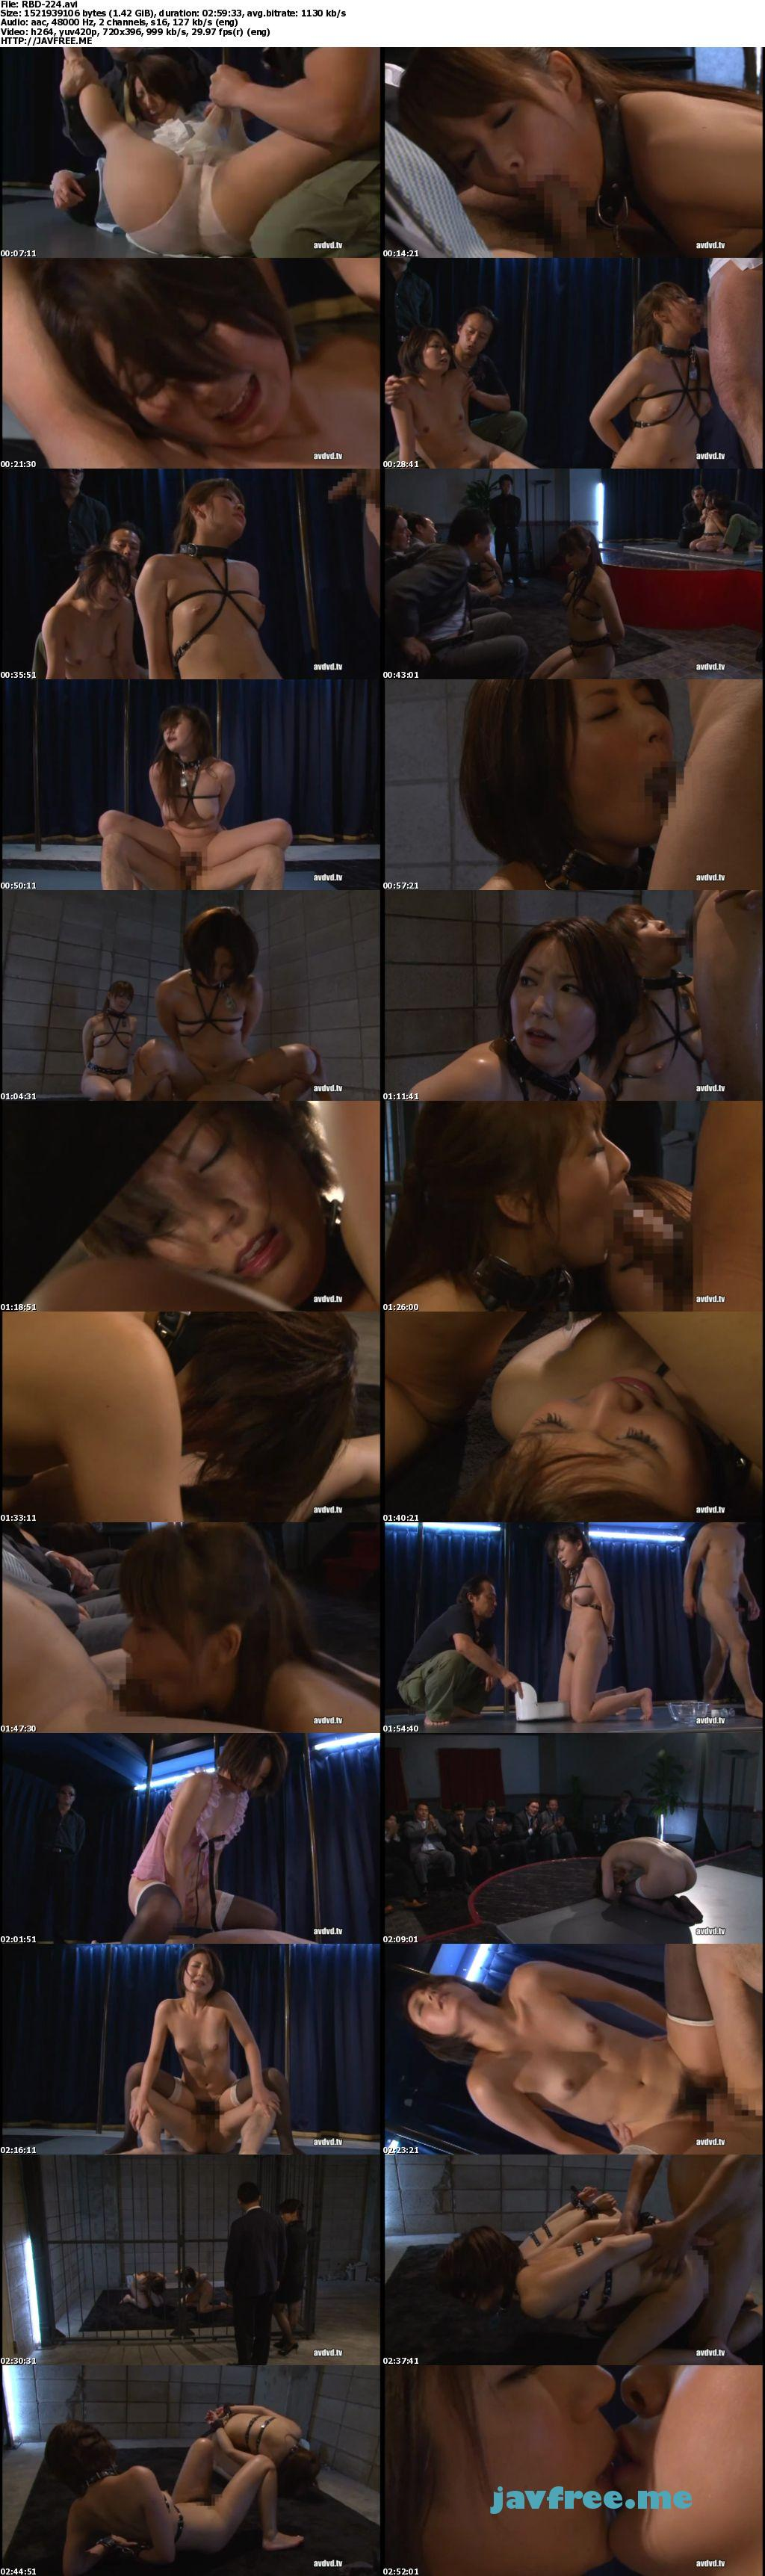 [RBD-224] 奴隷色の女教師3 - image RBD-224 on https://javfree.me